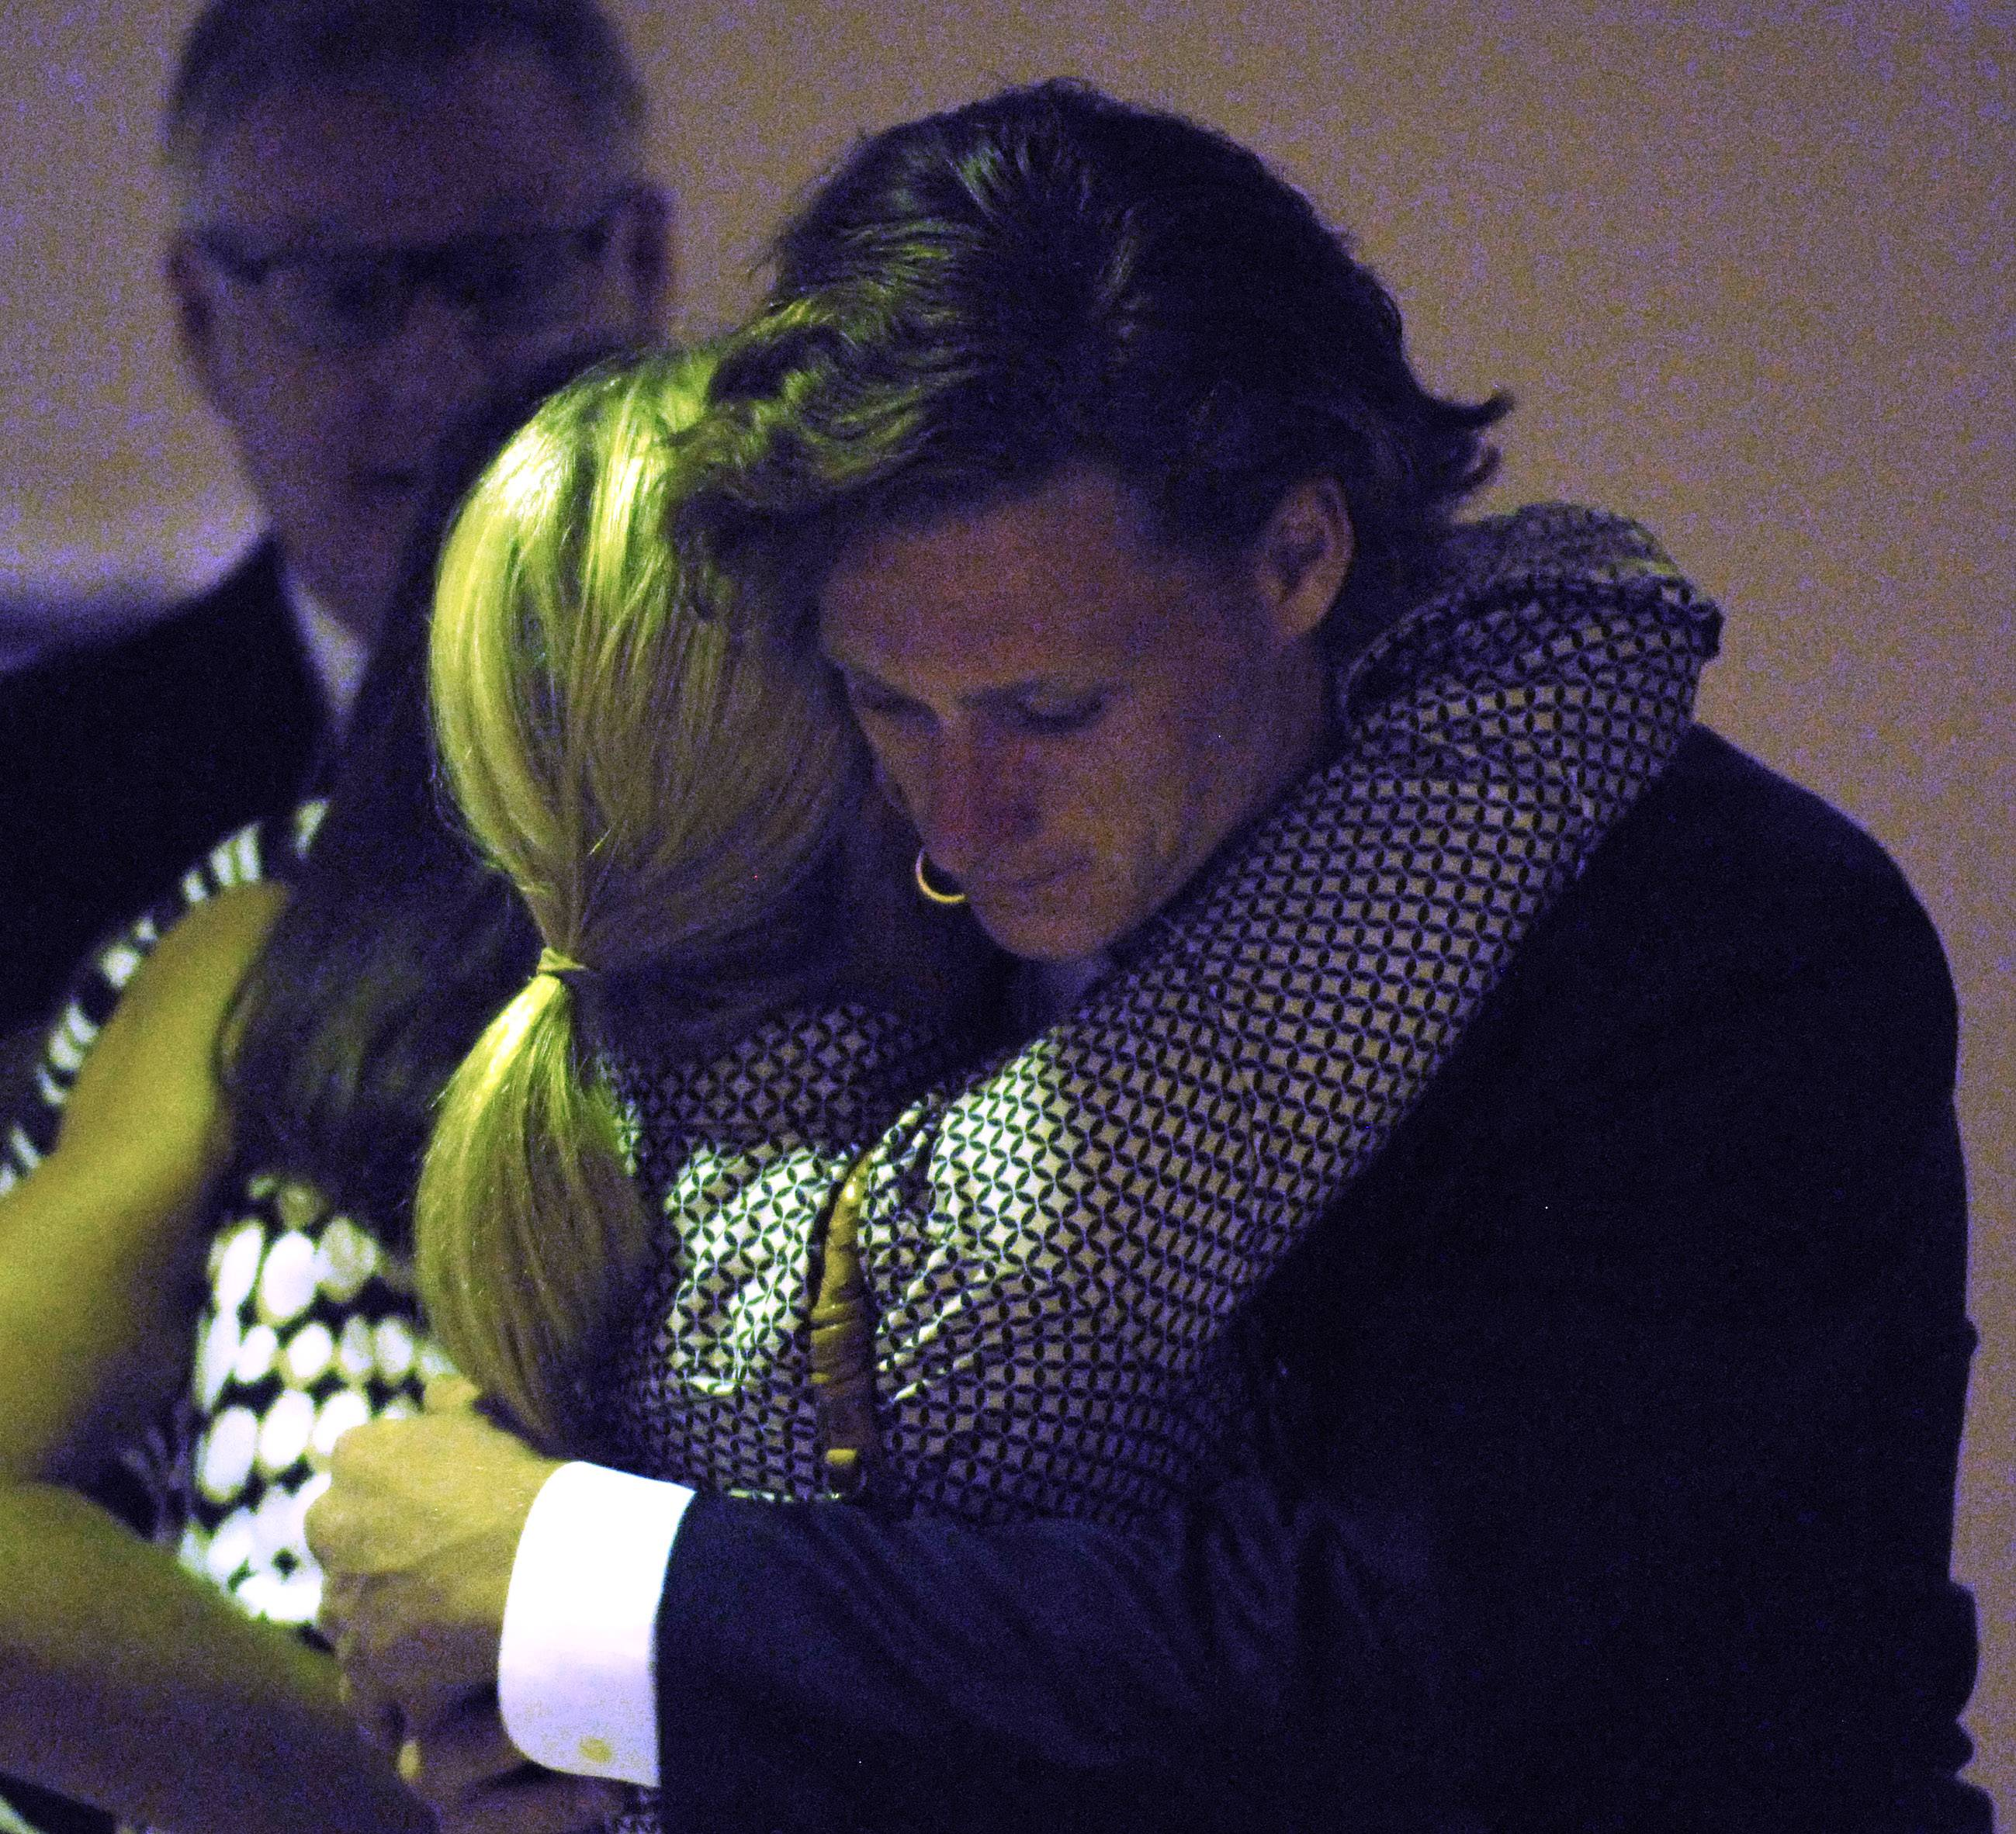 Karsten James Eilertsen, who pleaded guilty last month to his involvement in a fatal 2013 Barrington Hills auto collision, is hugged by family members prior to sentencing at the Rolling Meadows courthouse Thursday.